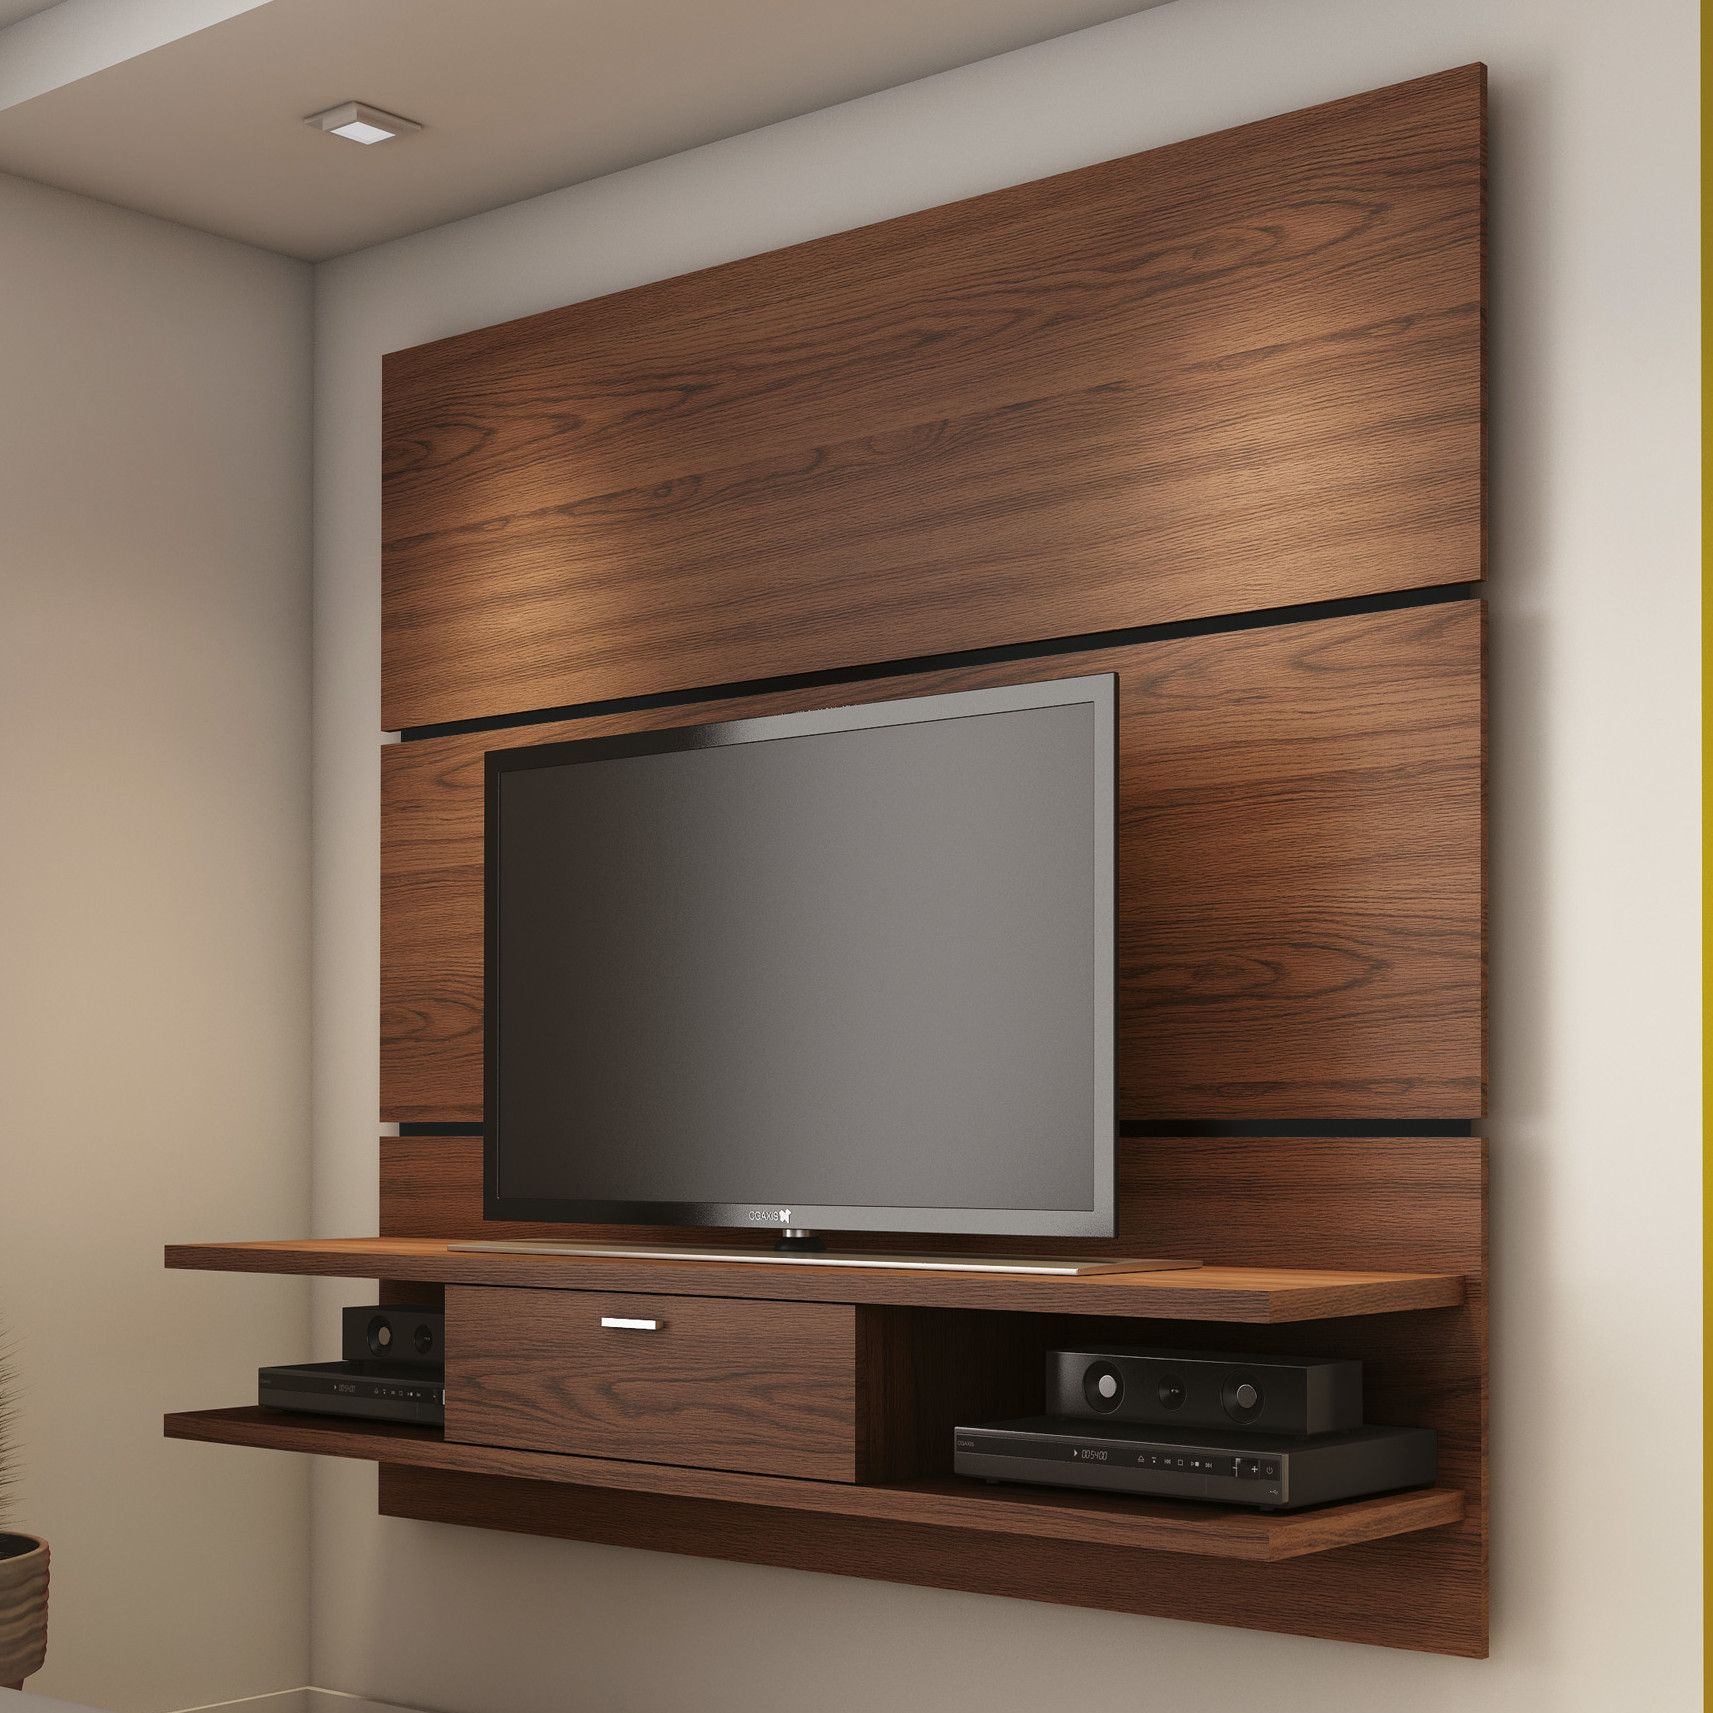 Wall Mounted Tv Console Ideas Small Bedroom Tv Unit Wooden Wall Mounted Tv Stand For